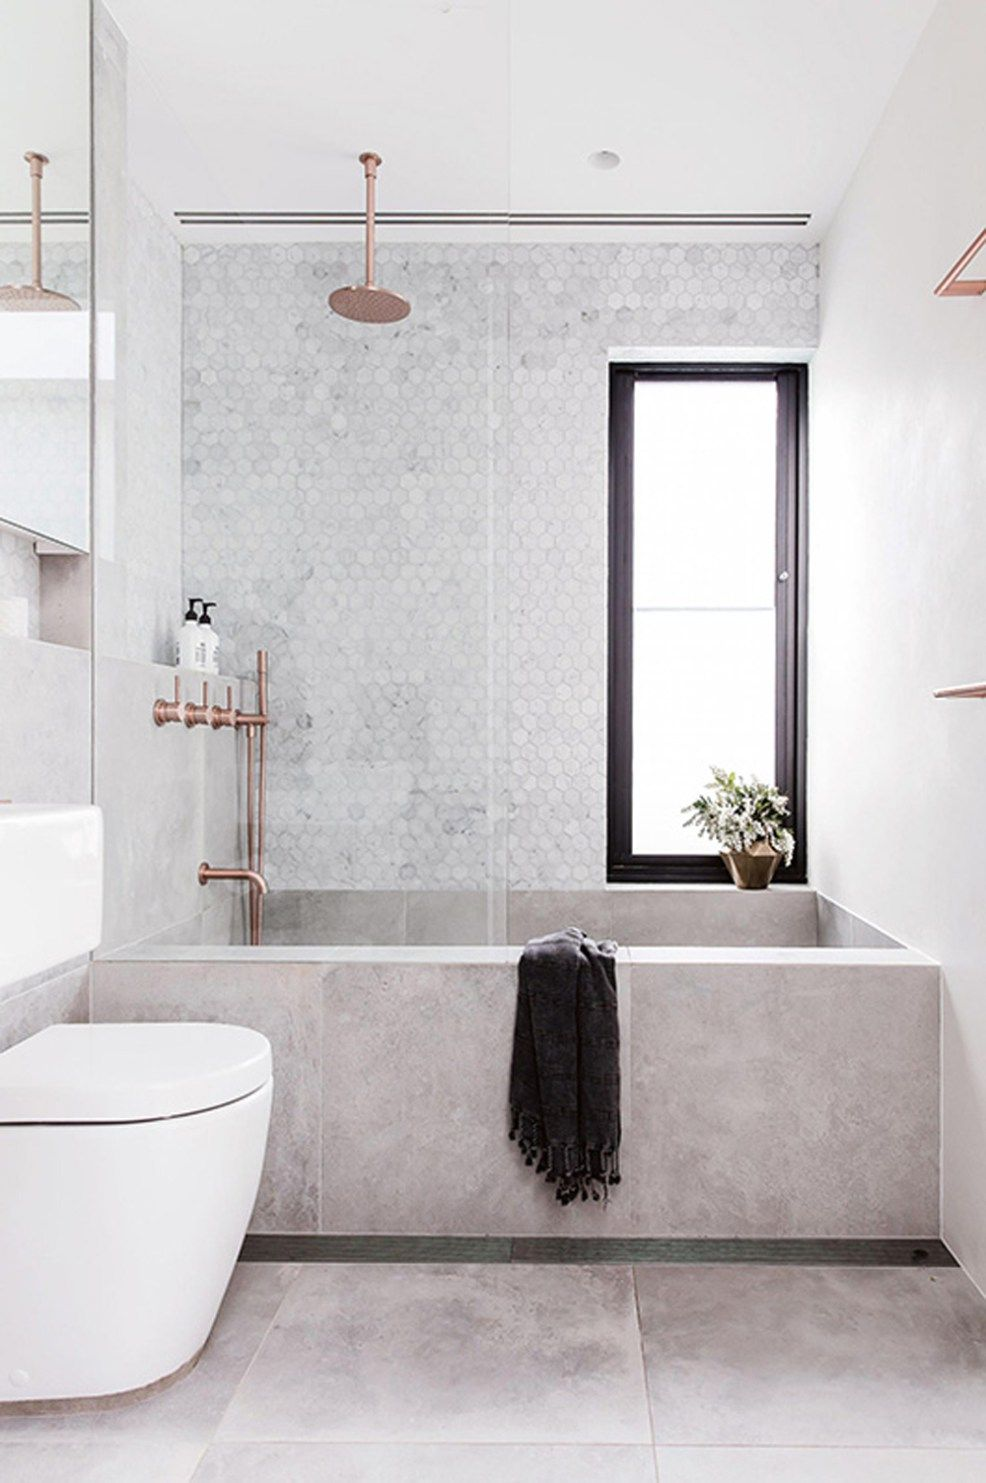 13 BEAUTIFUL BATHROOMS I CANT STOP THINKING ABOUT Interiors Bath